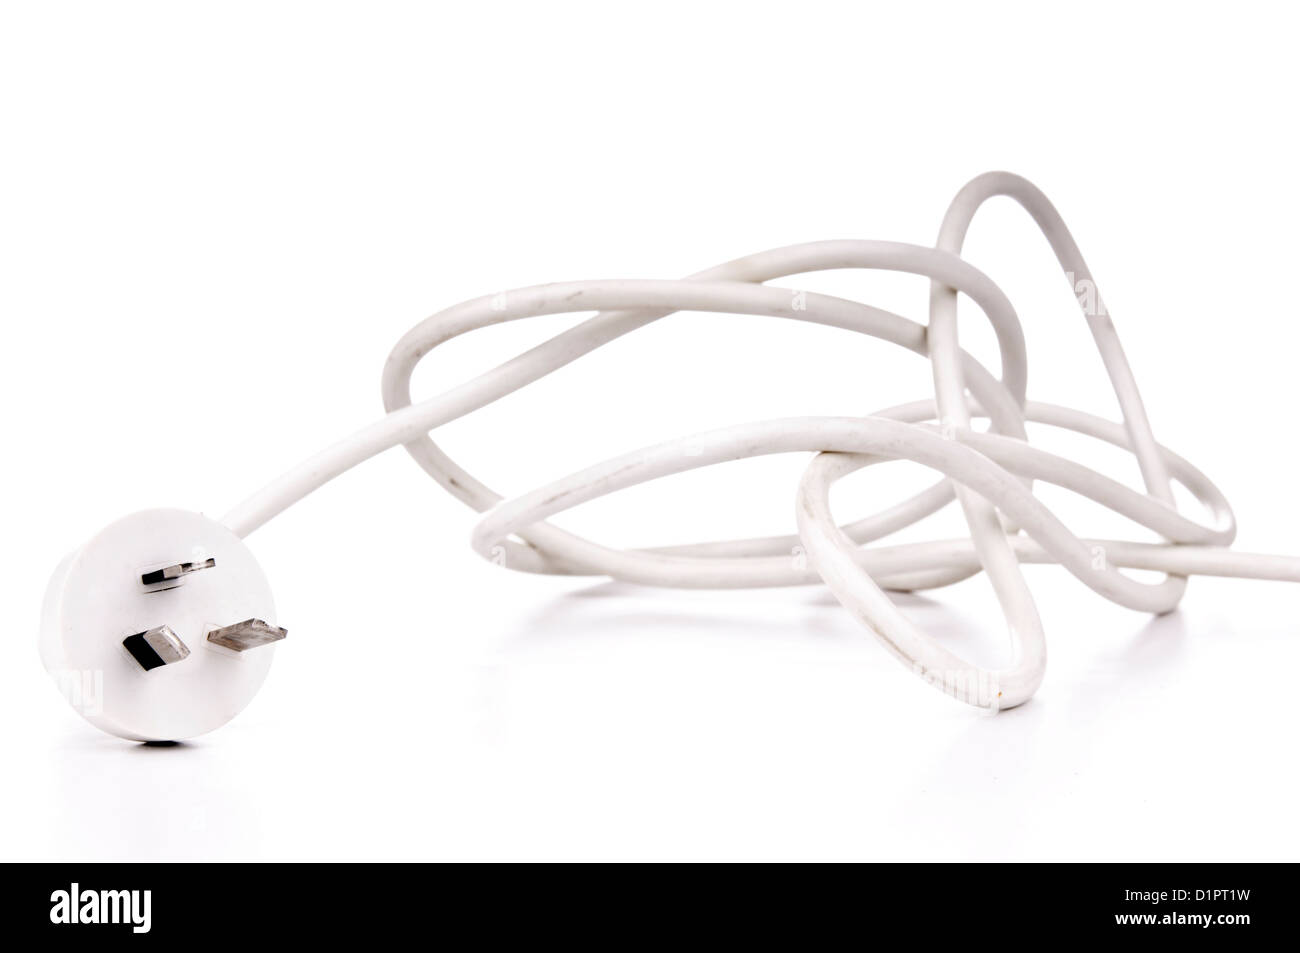 White electrical cord plug isolated on white - Stock Image